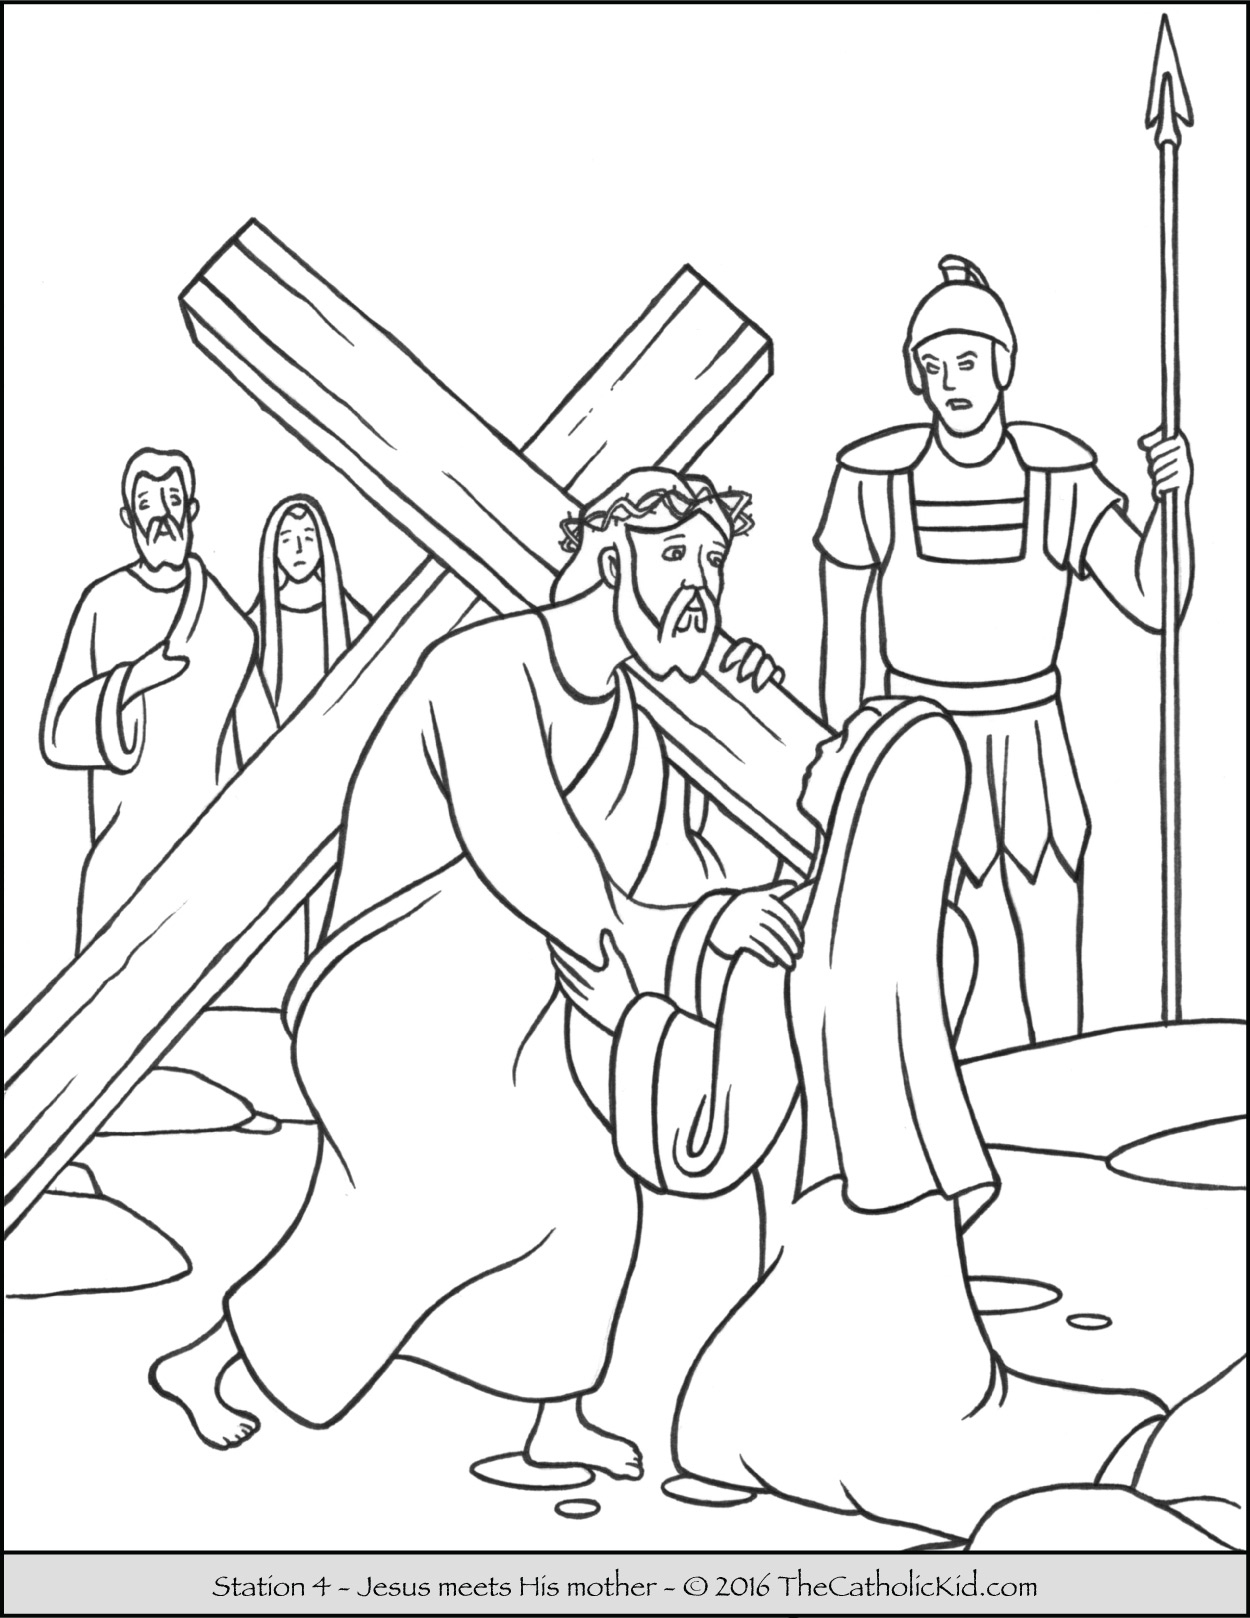 Stations Of The Cross Coloring Pages - The Catholic Kid | Stations Of The Cross Printable Worksheets